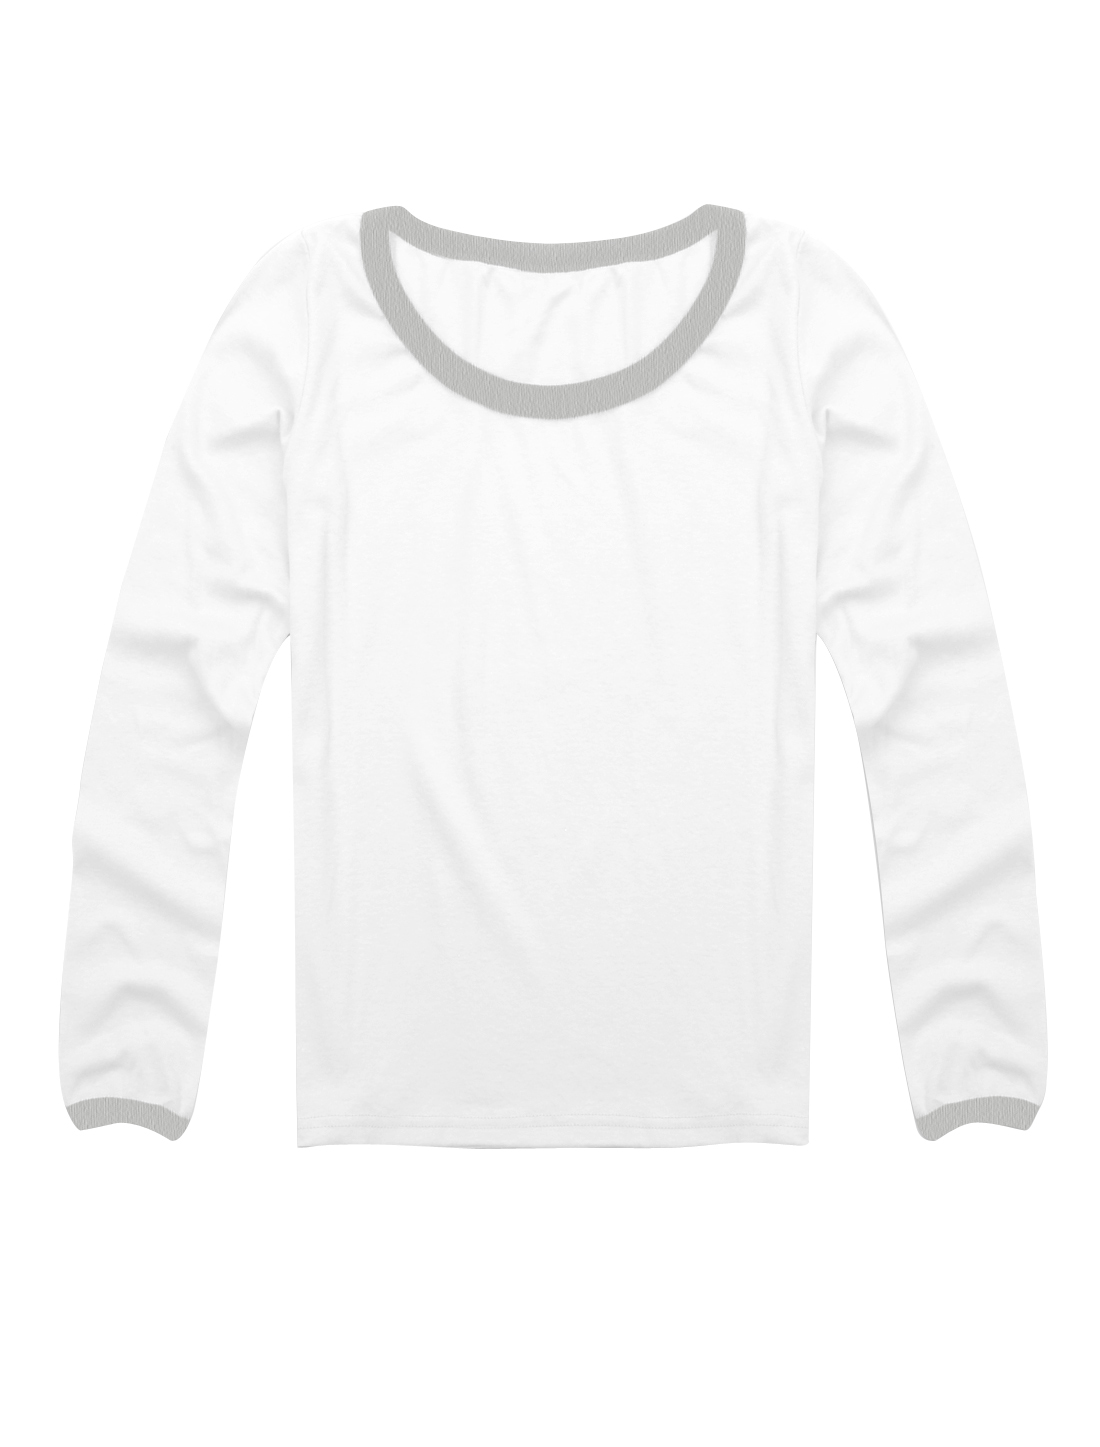 Low Round Neck Long Sleeves Closefitting Skivvi Shirt White XS for Ladies